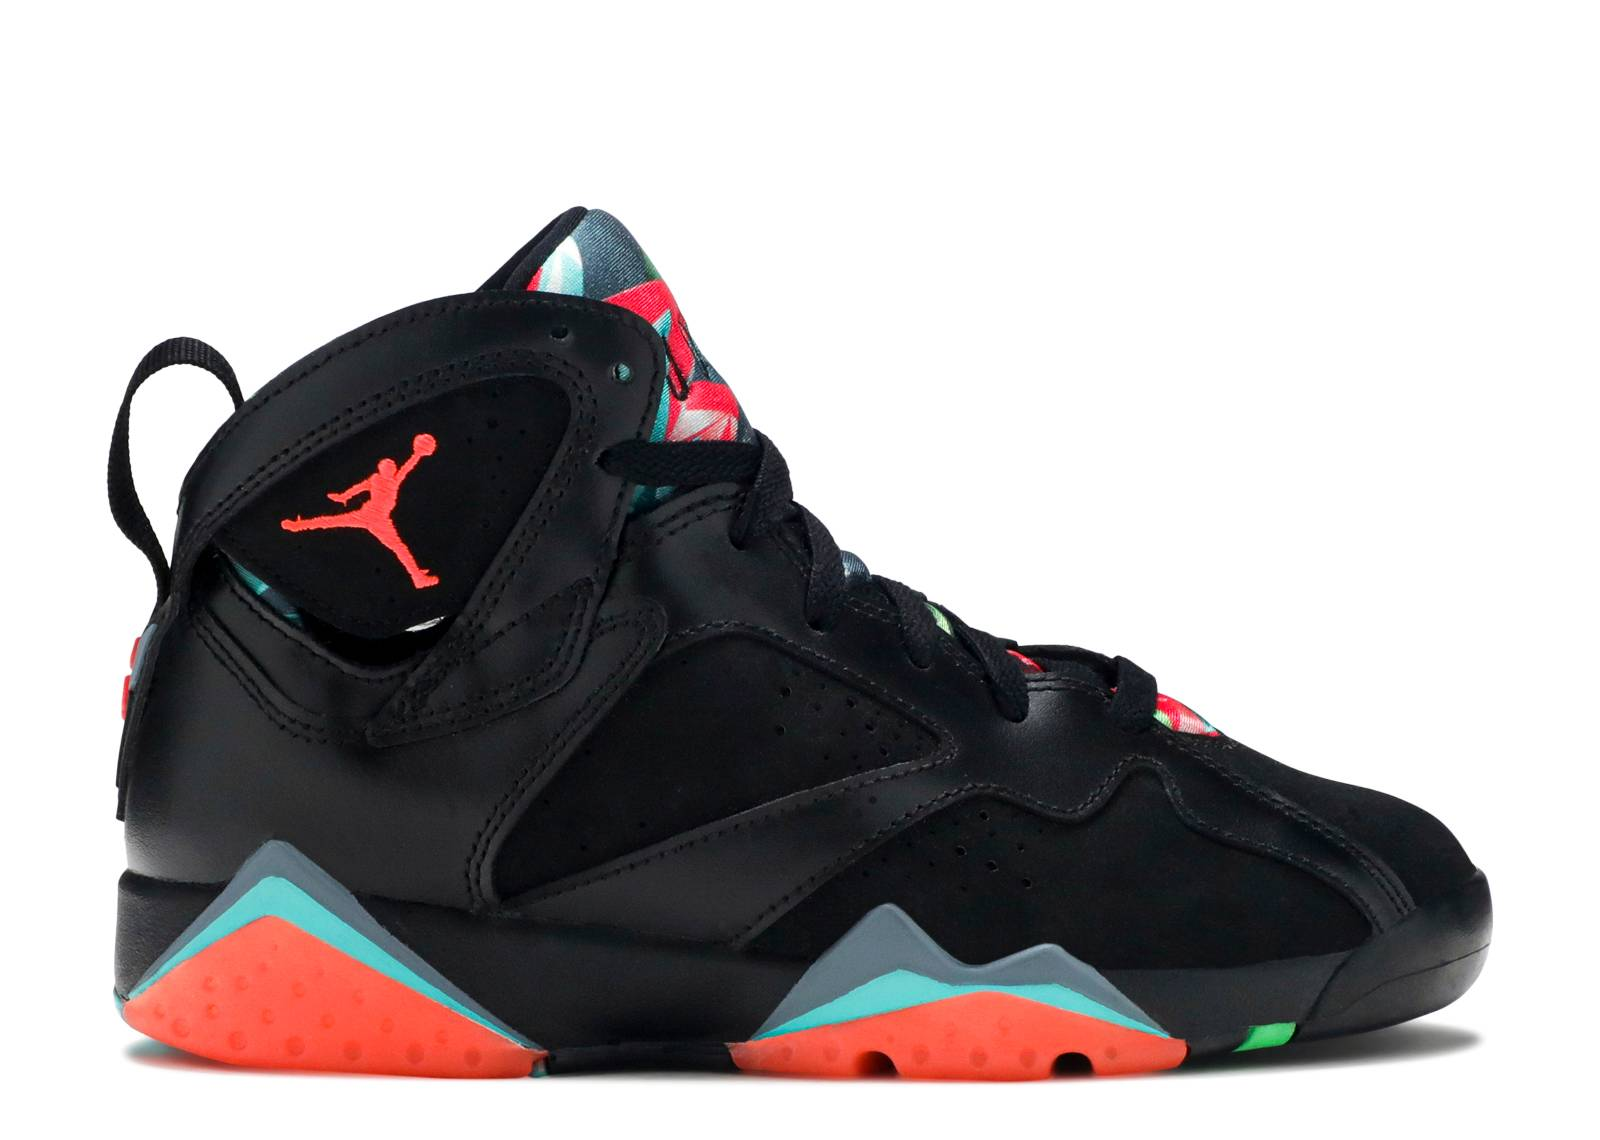 dca48890abc574 air jordan. air jordan 7 retro ...